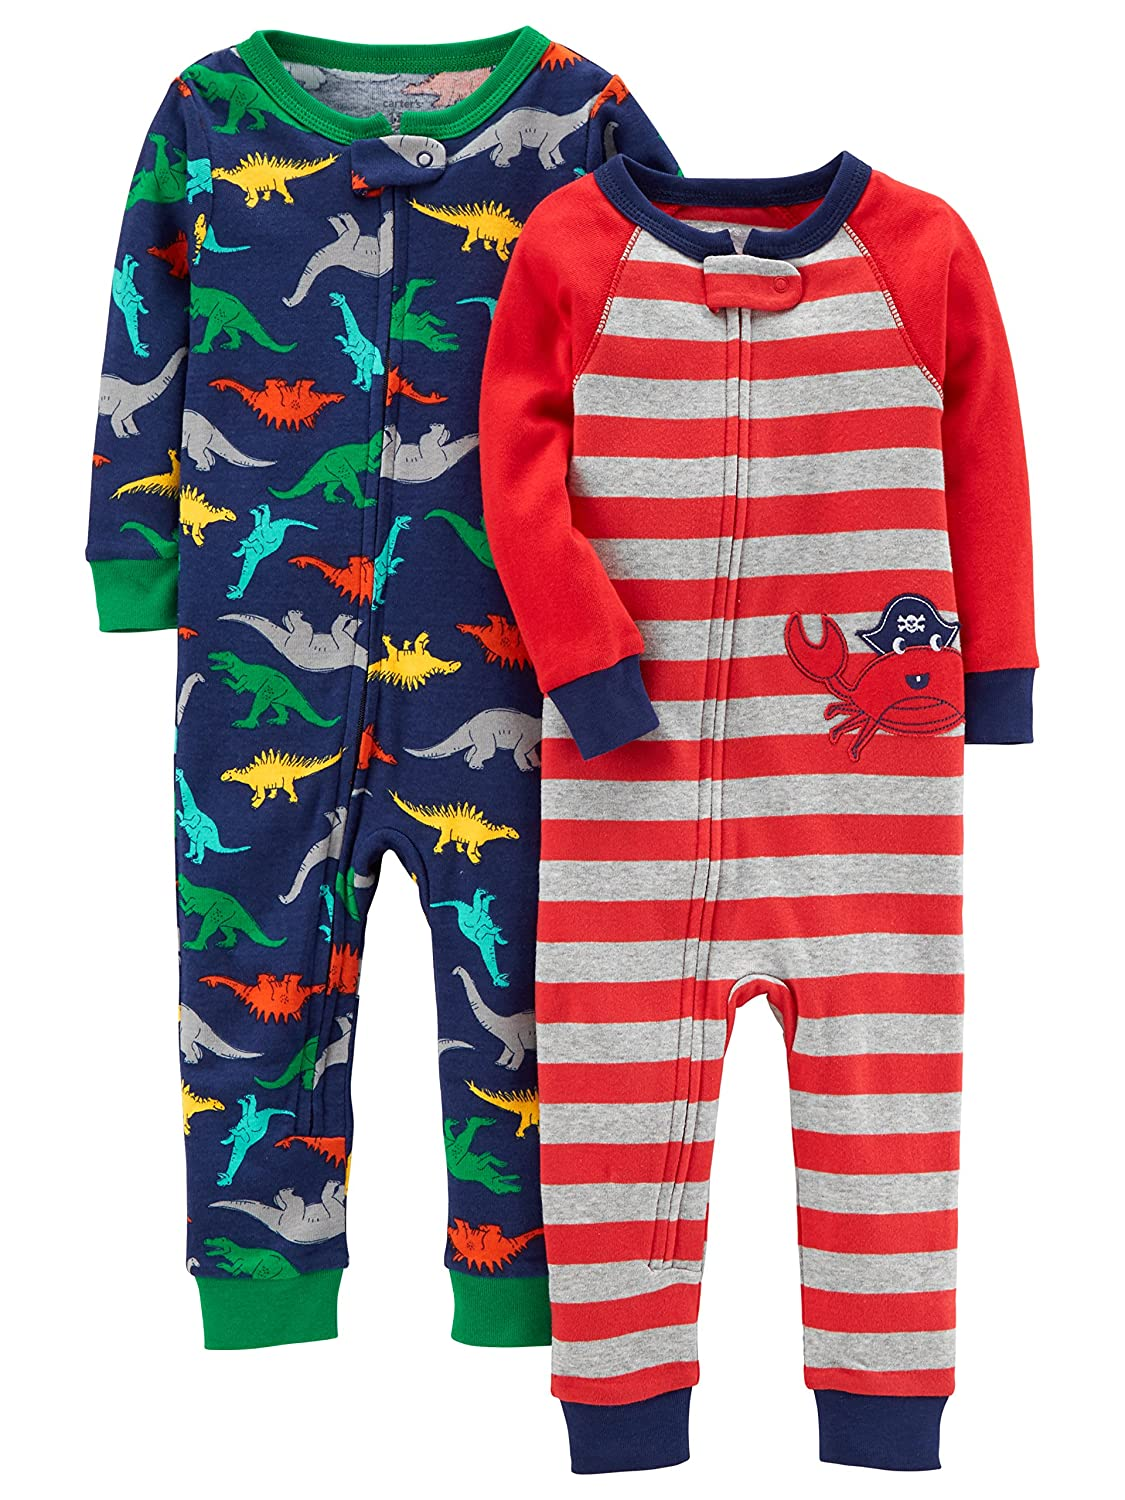 Carter's Baby Boys' 2-Pack Cotton Footless Pajamas Carter's 2-pack Cotton Pajamas